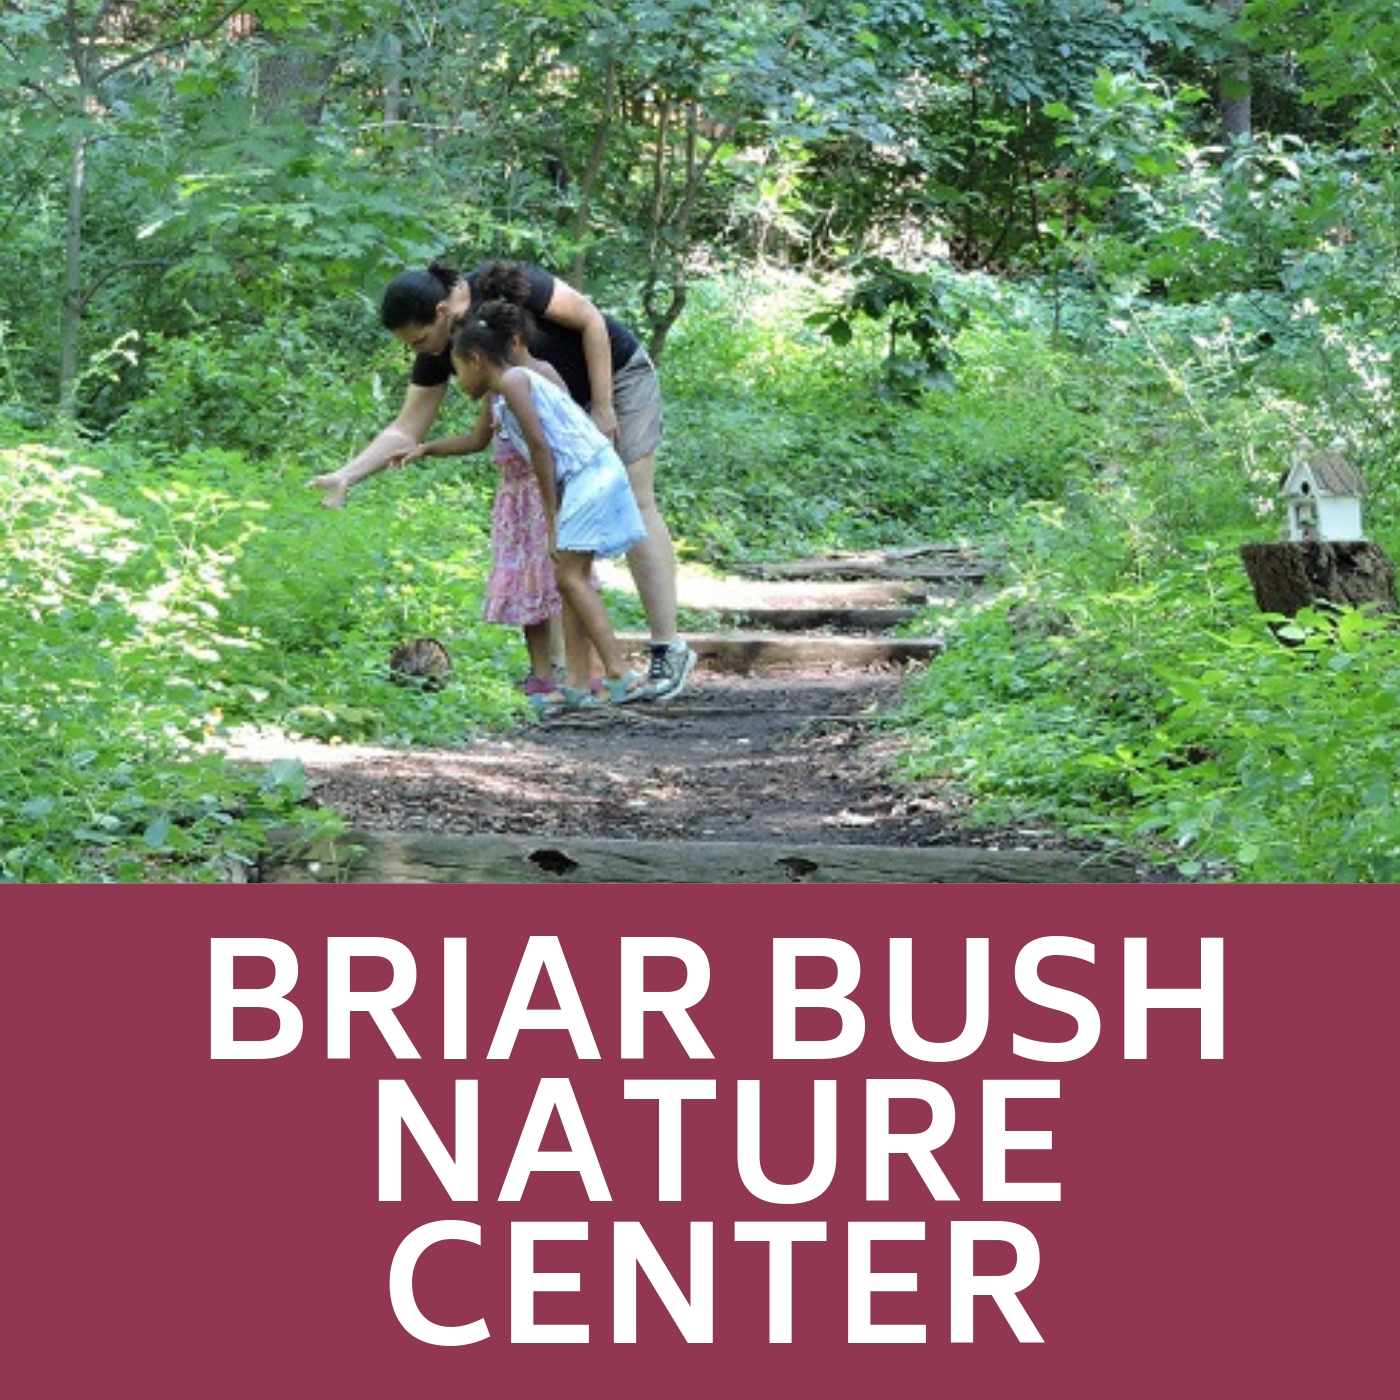 Briar Bush Nature Center Icon that links to Briar Bush Nature Center webpage